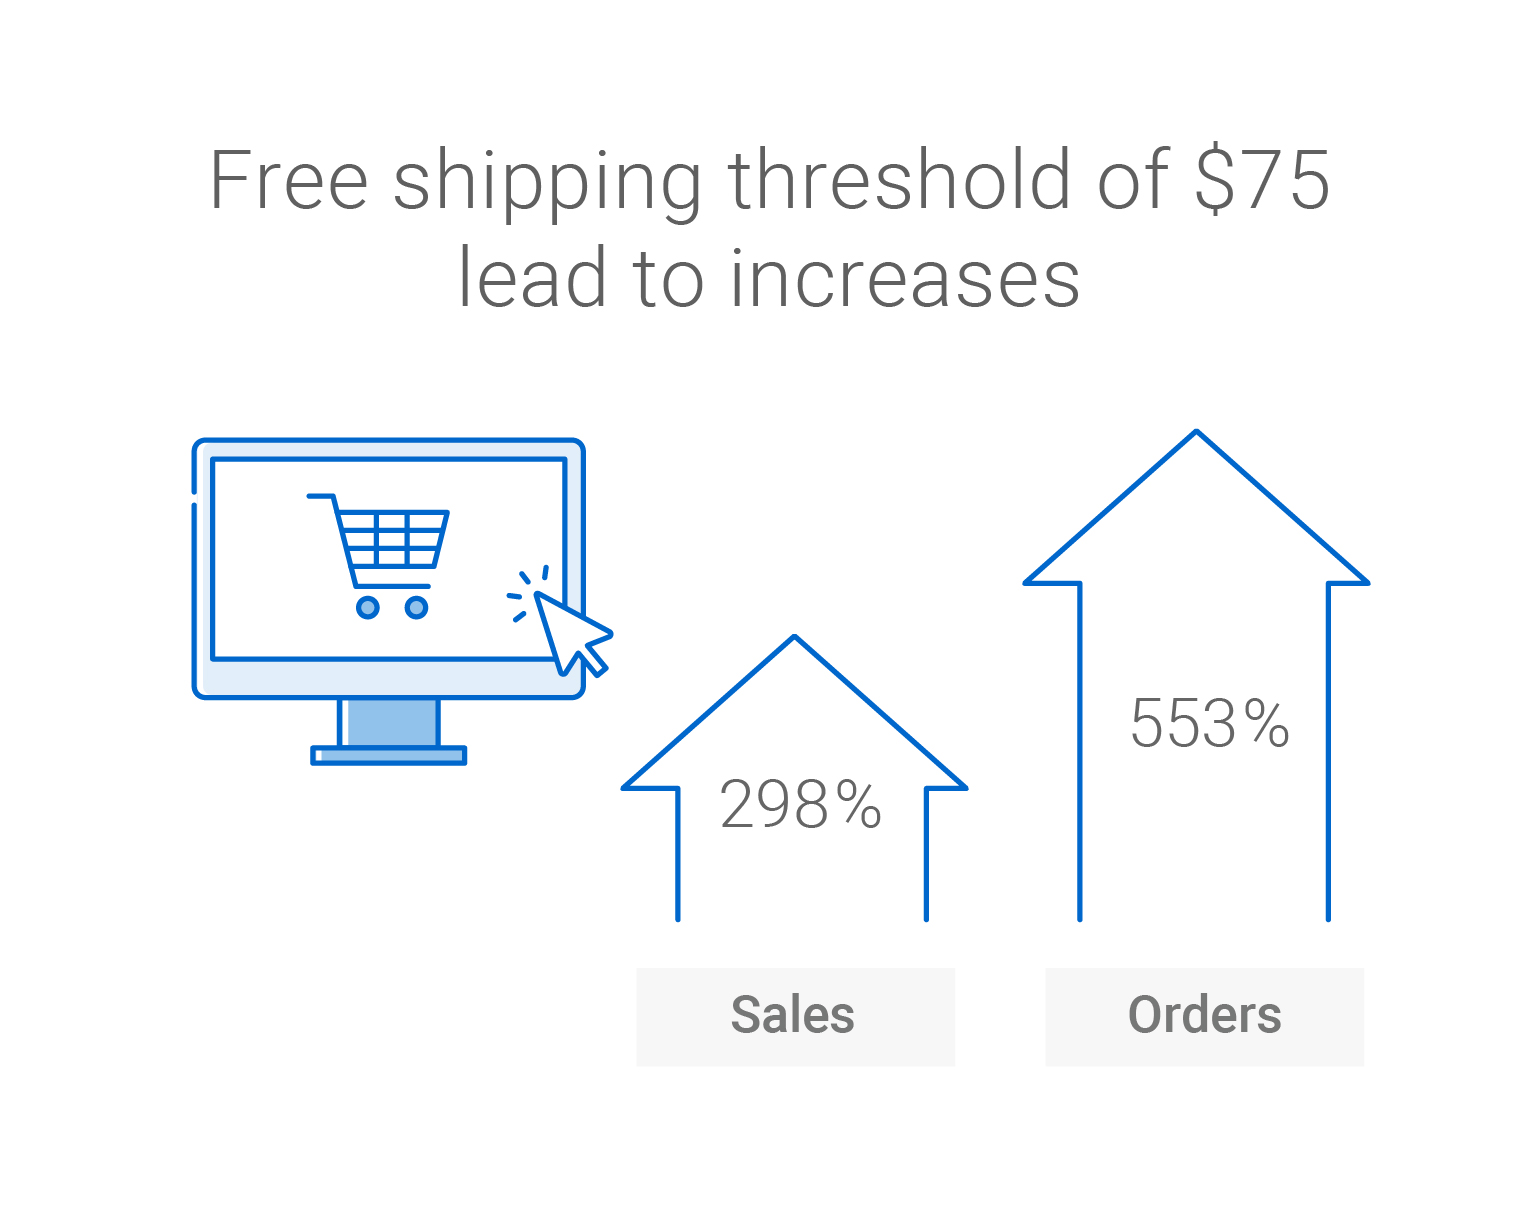 A free shipping threshold of $75 lead to increases in sales and orders, specifically a 298 per cent increase in sales and 553 per cent increase in orders.